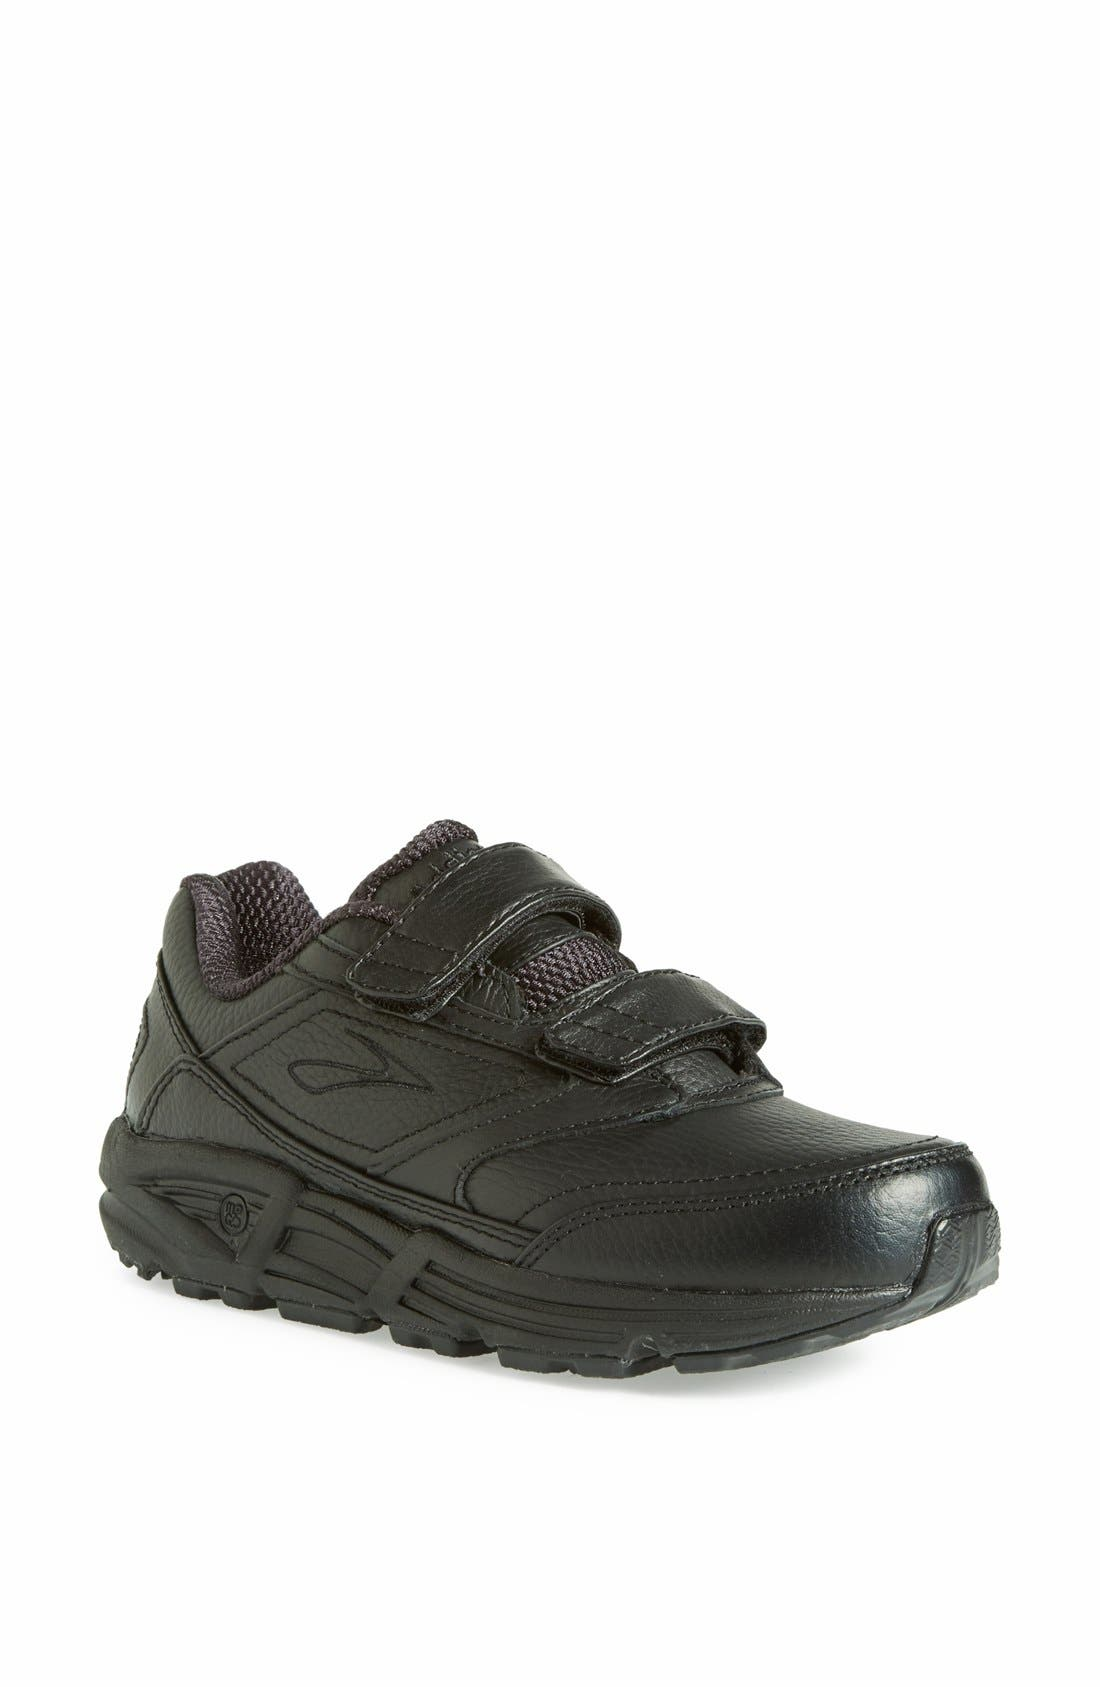 BROOKS Addiction Walking Shoe